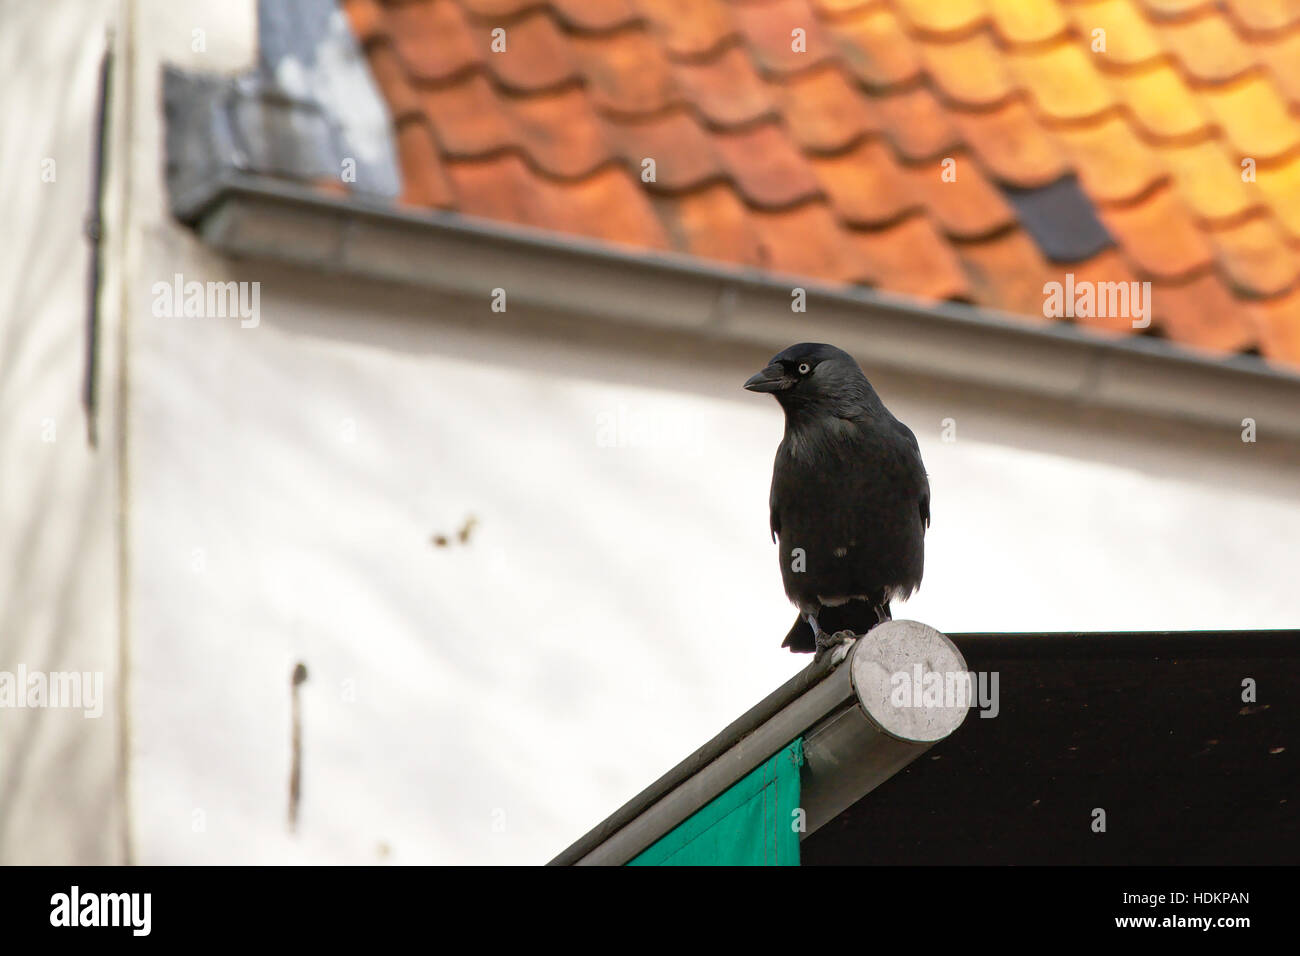 Black crow in the city, sitting on an awning with a white house in the background - Stock Image